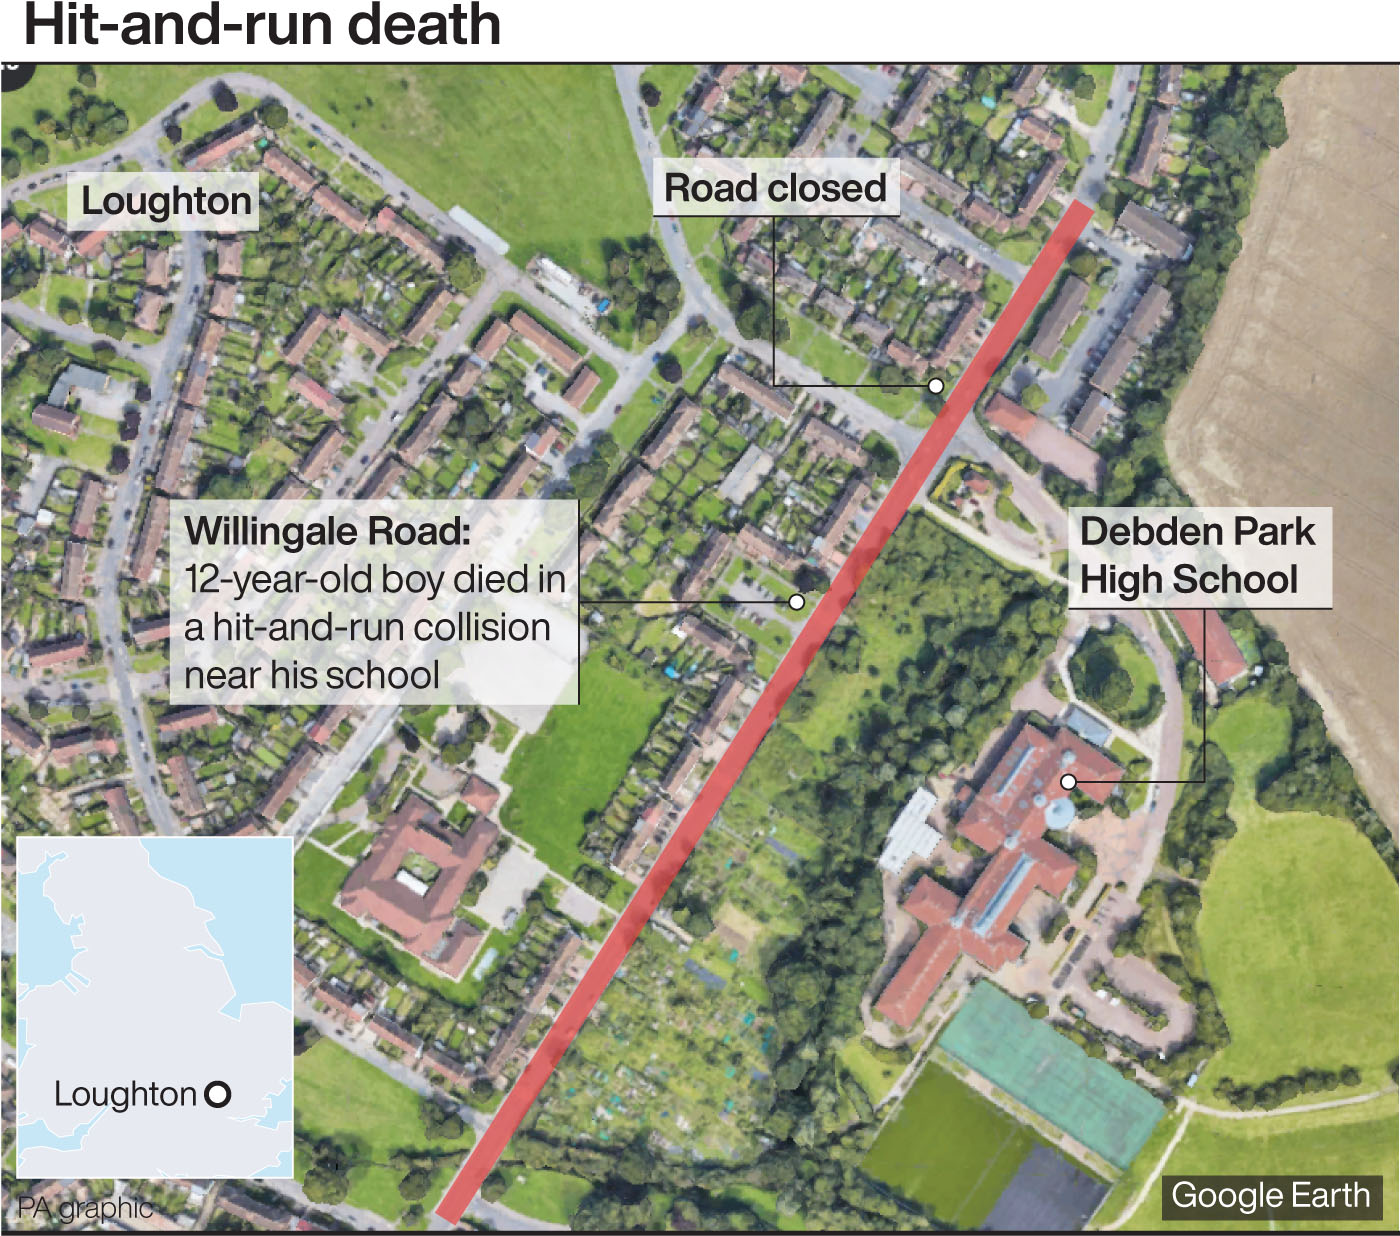 Graphic locates Debden Park High School in Loughton